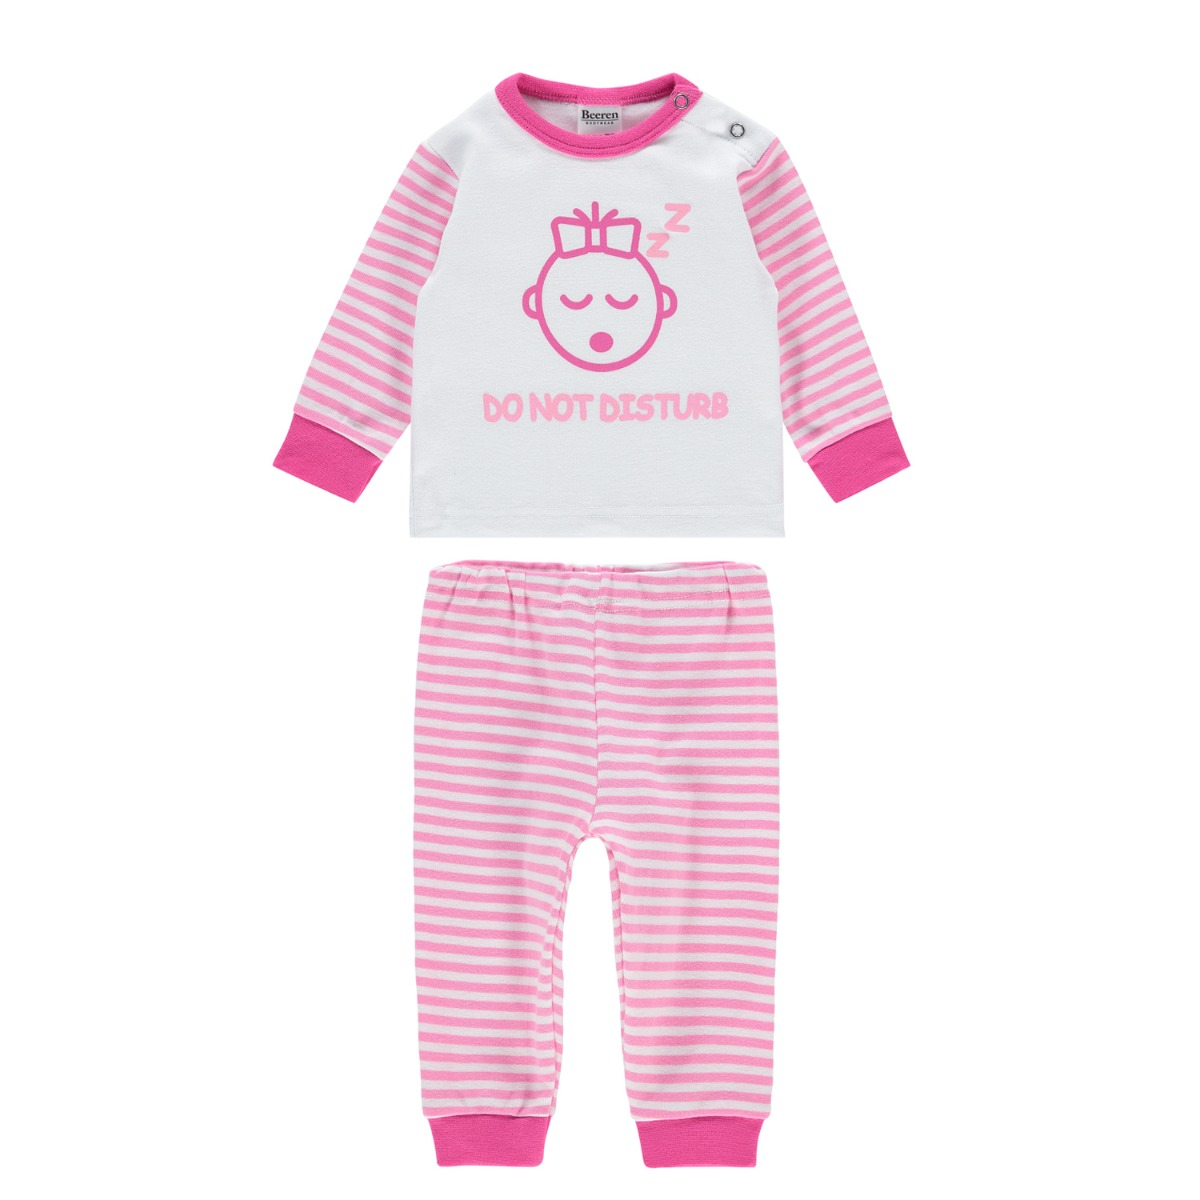 Beeren M3000 Baby Pyjama Do Not Disturb Pink 62/68